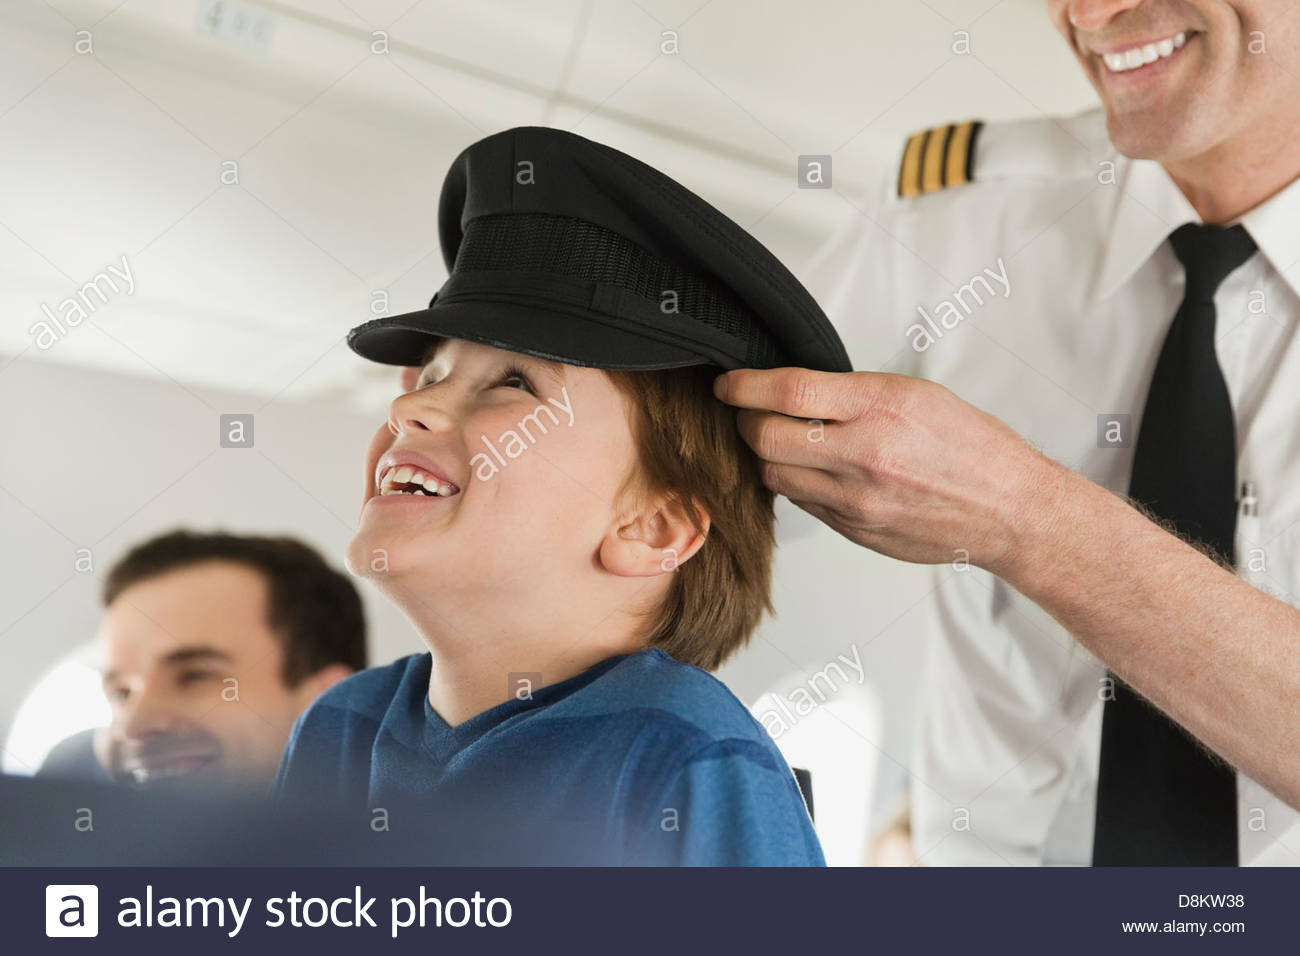 Male pilot placing his cap on boy's head in airplane - Stock Image